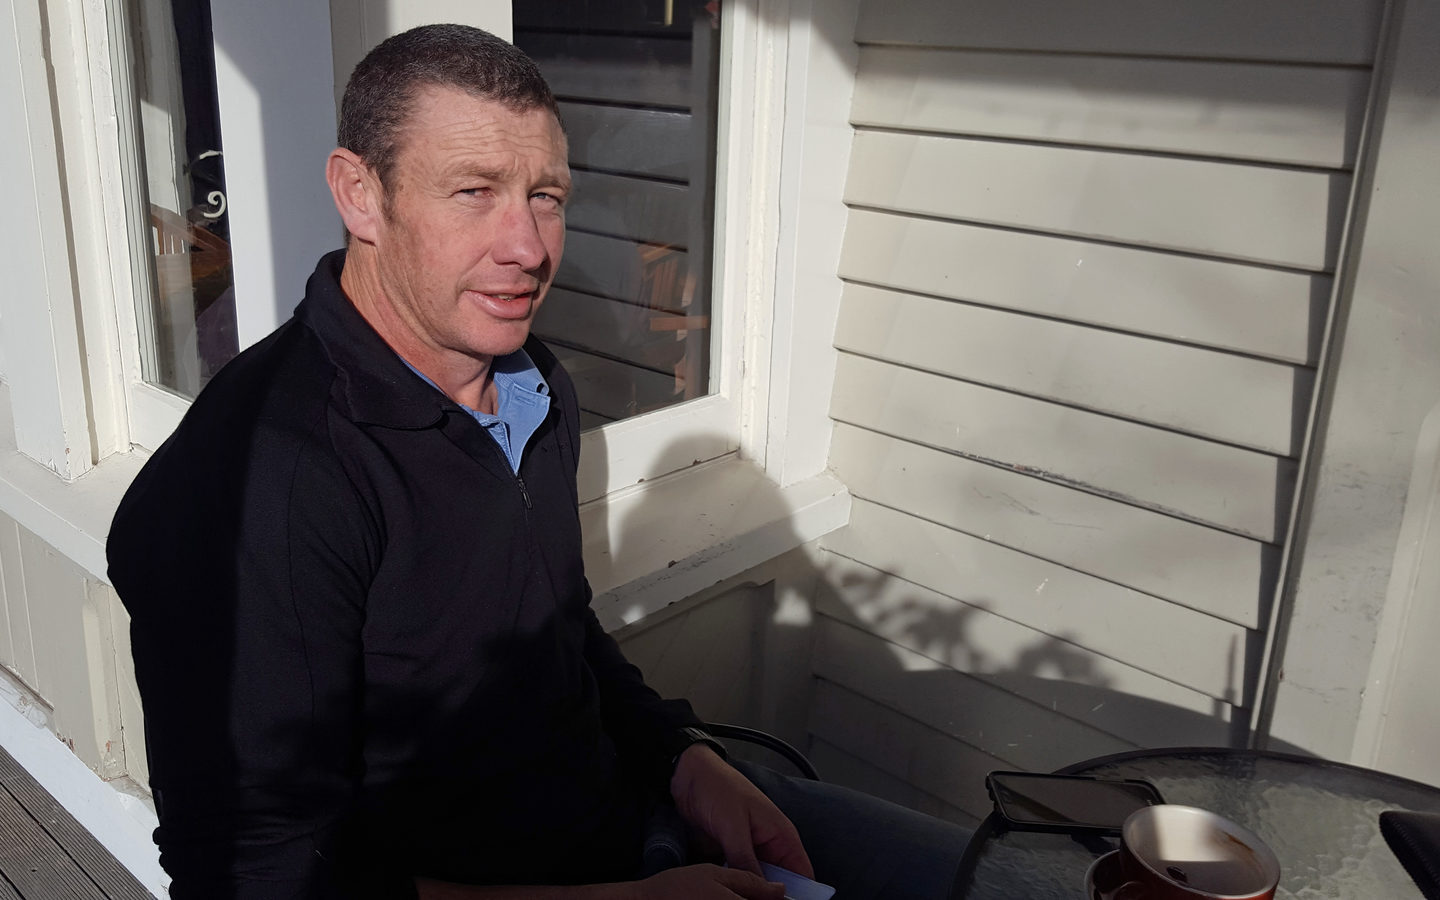 North Canterbury farmer James McCone says dairy conversions have been a boon for the region